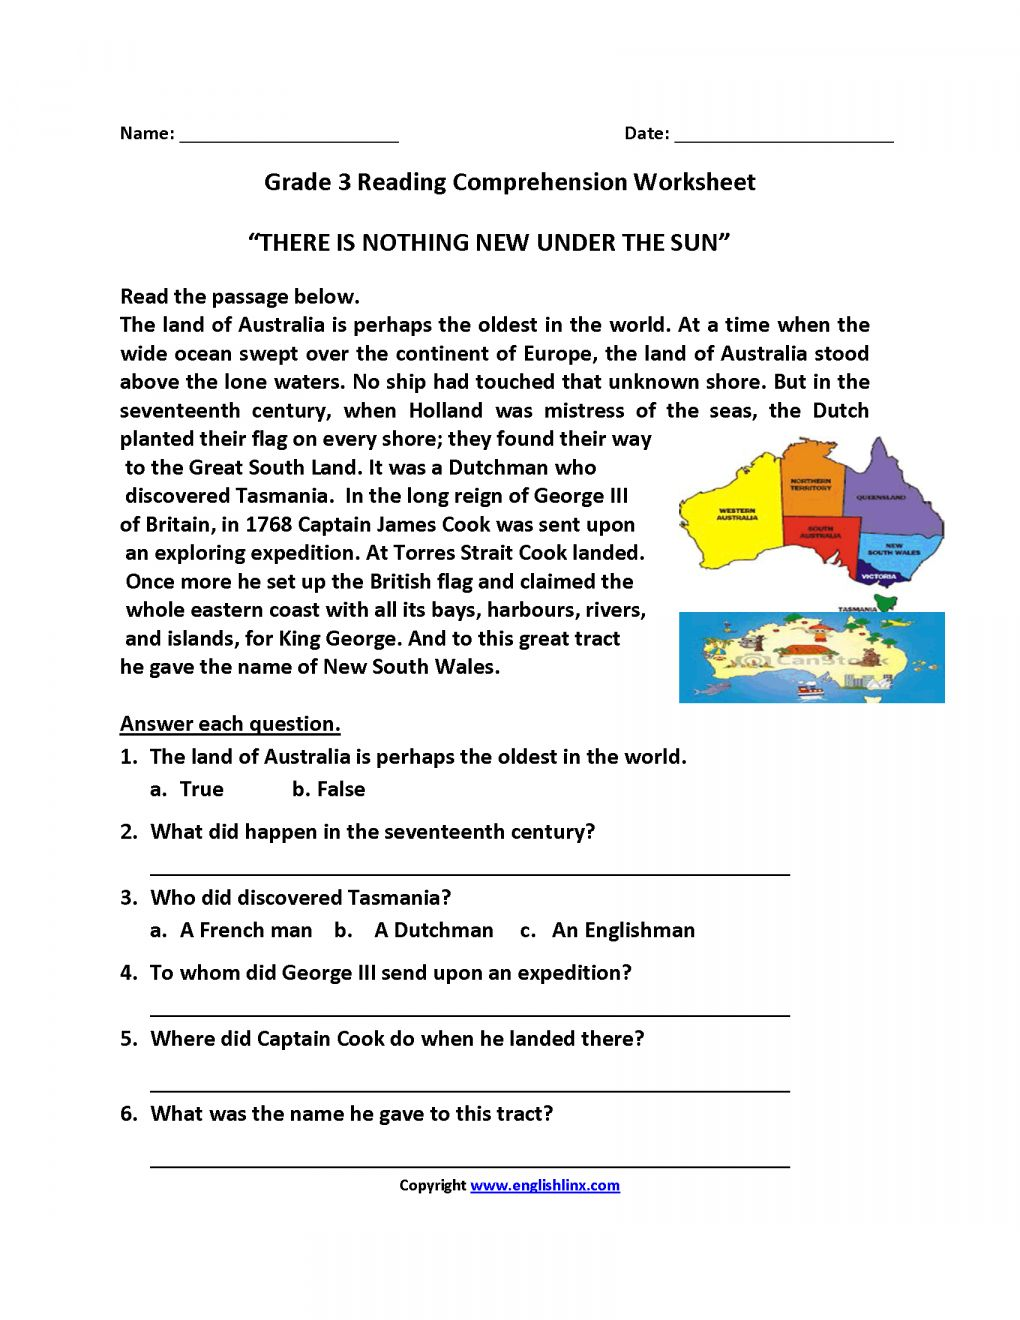 medium resolution of 8+ The Sun Reading Comprehension Worksheet   4th grade reading worksheets